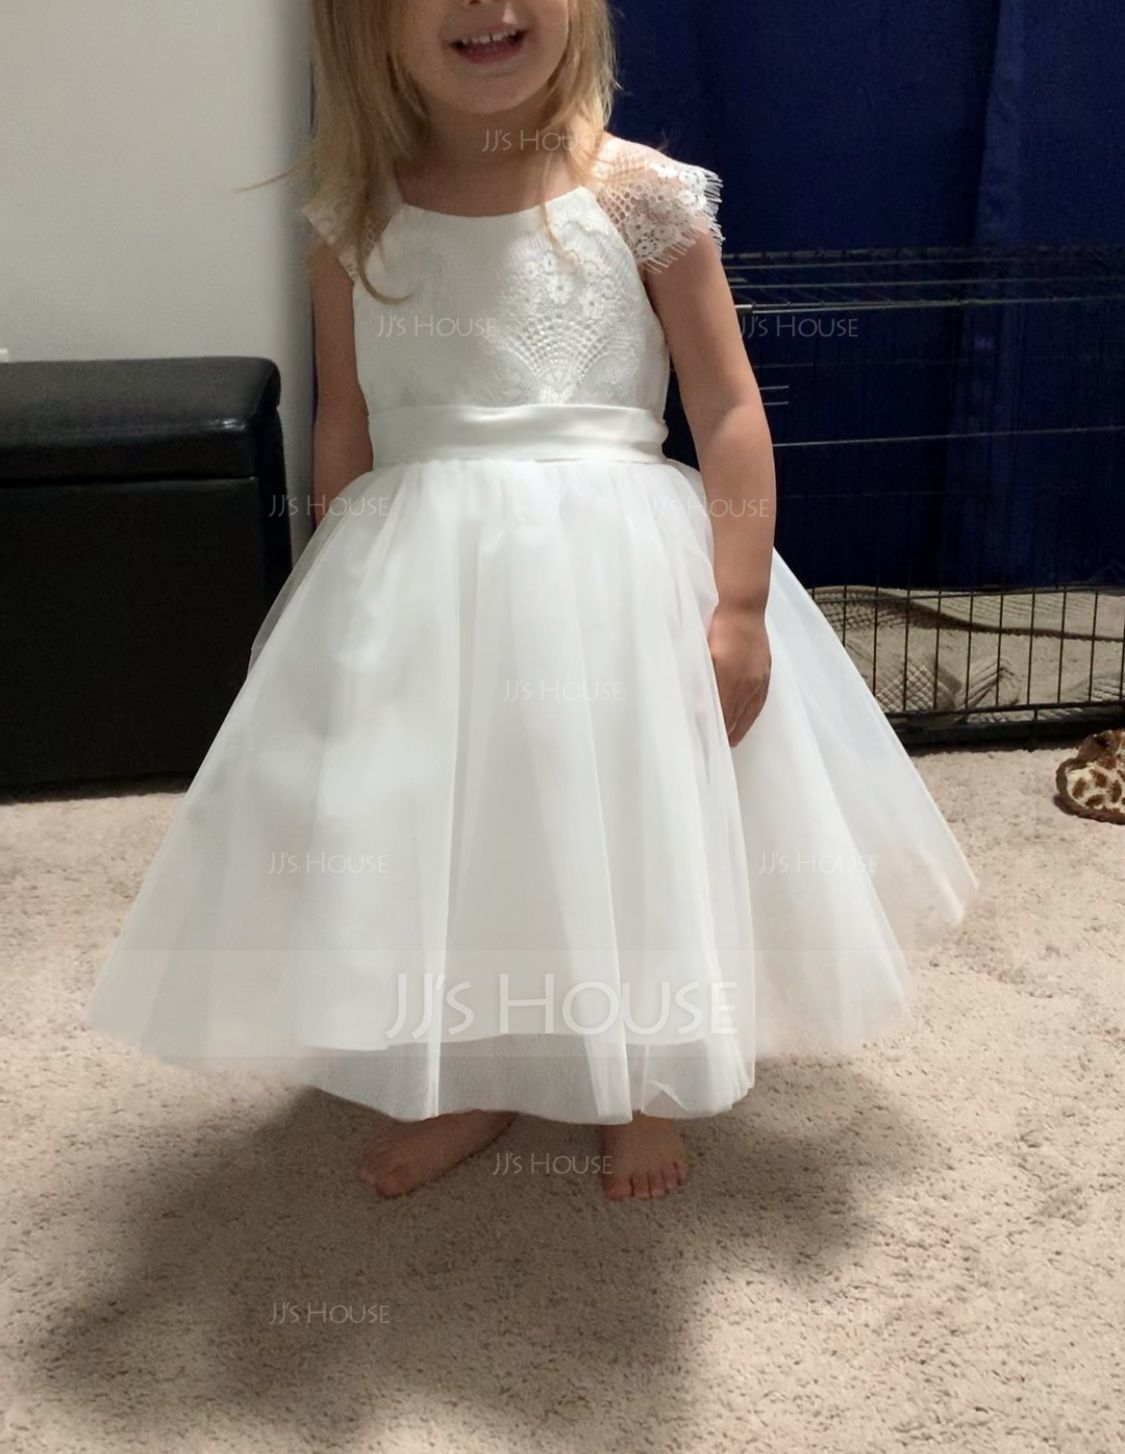 A-Line/Princess Knee-length Flower Girl Dress - Tulle/Lace Sleeveless Scoop Neck With Appliques (Undetachable sash) (010105755)